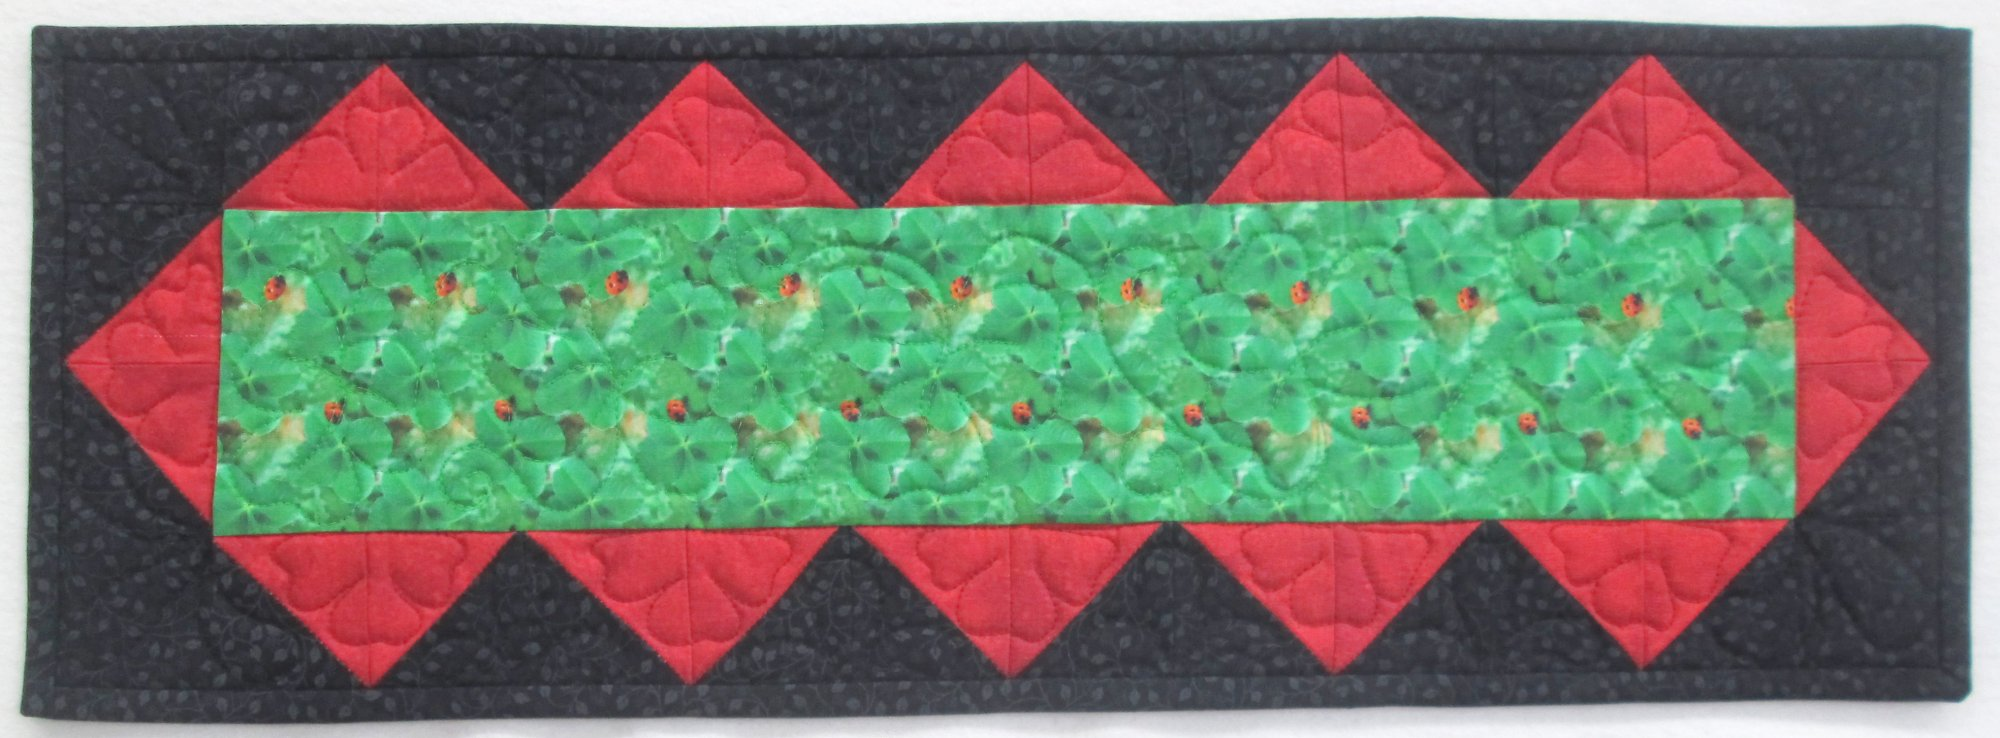 Shamrock & Ladybug Beautifully Easy Table Runner Kit  8 1/2 by 24 1/2